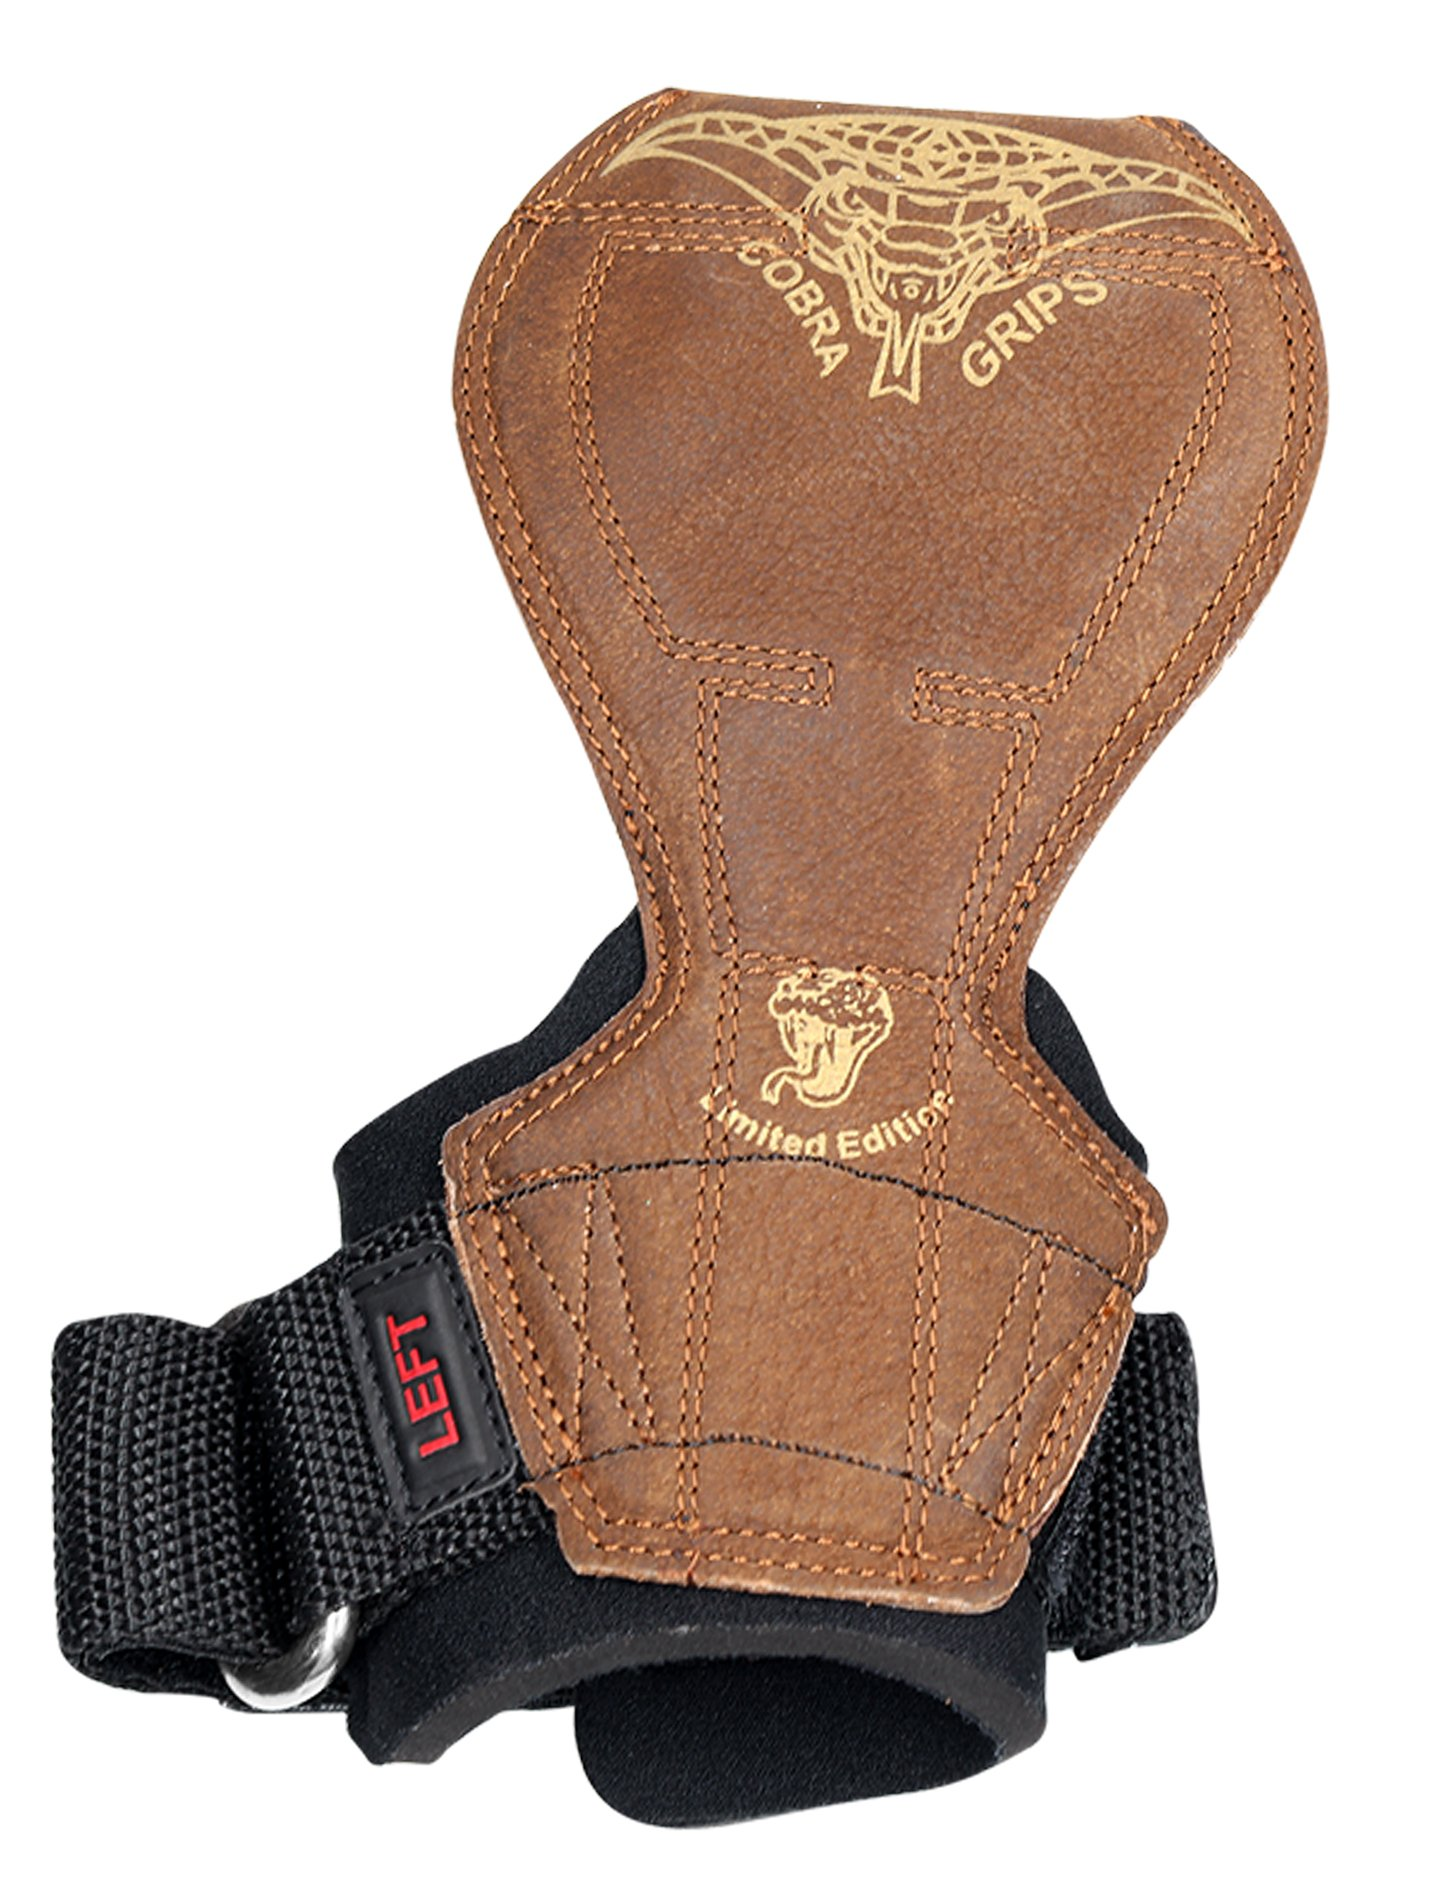 2018 Cobra Grips Flex Model Weight Lifting Gloves Heavy Duty Straps Alternative Power Lifting Hooks Best for Deadlifts with Padded Wrist Wrap Support Bodybuilding (Medium, Brown Leather) by Grip Power Pads (Image #6)